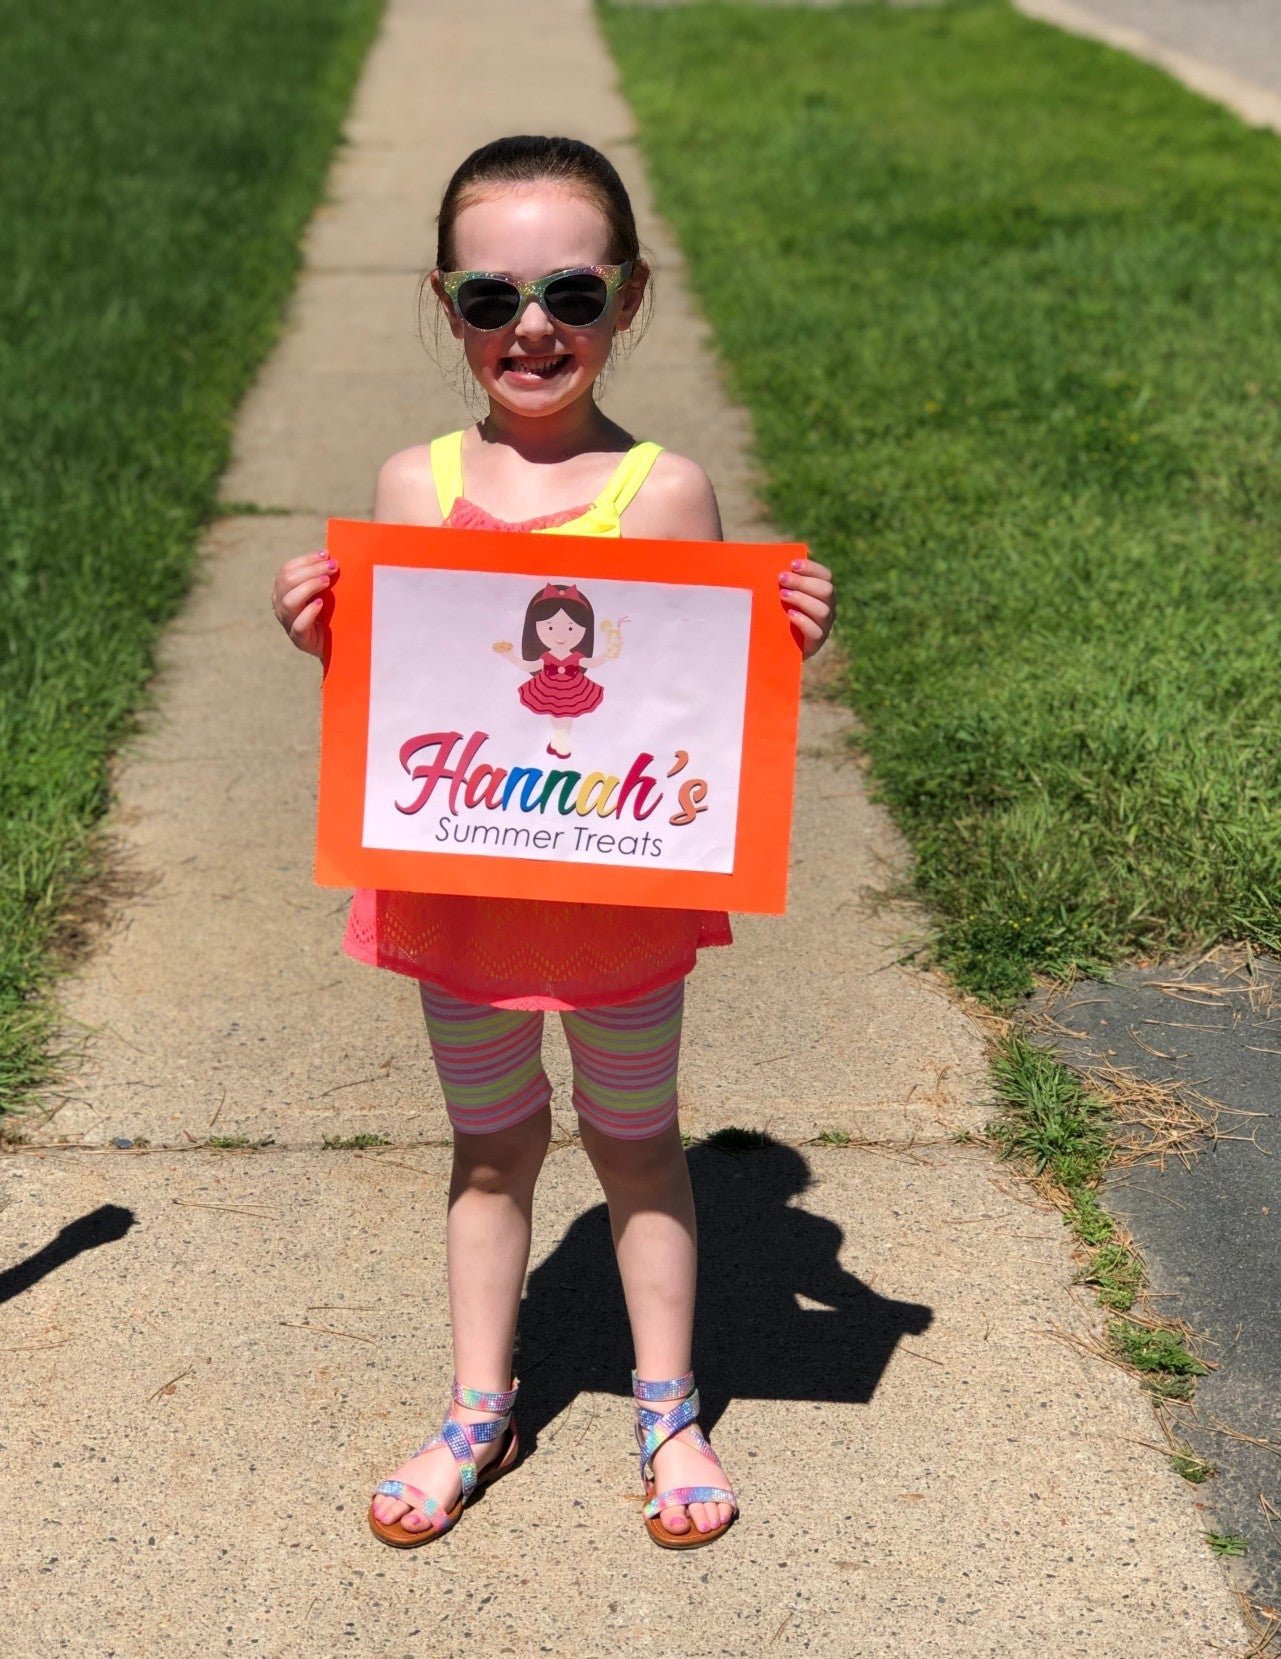 Hannah stands on the sidewalk holding a promotional sign for Hannah's Treats.